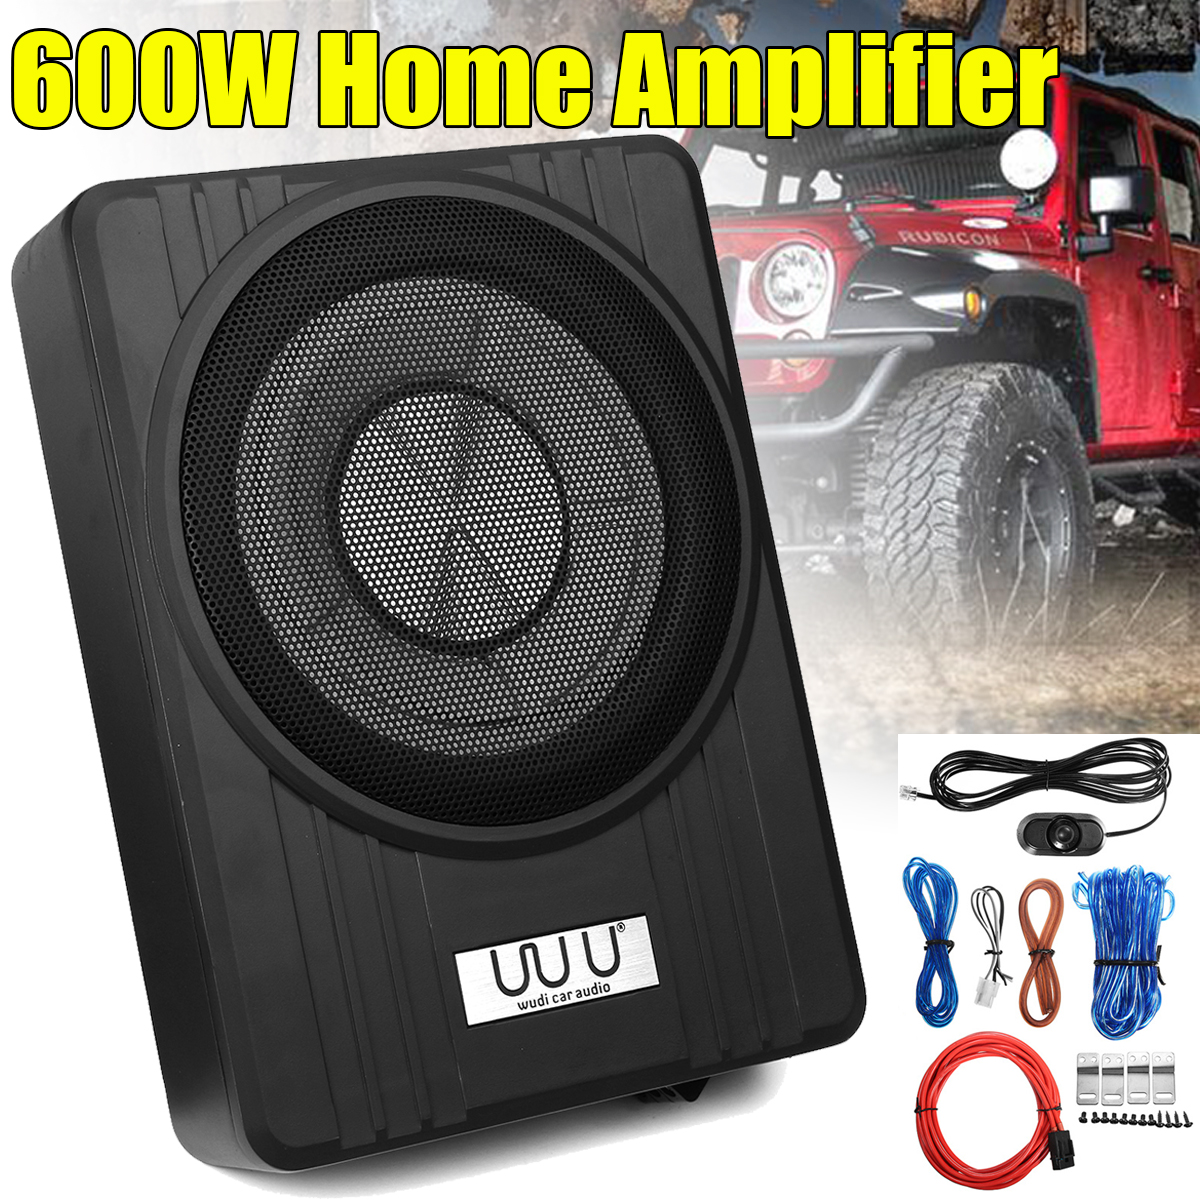 "10"" 600W Under Seat Car Subwoofer Amplifier Ultra Thin Vehicle Active Subwoofer Bass Amplifier Speaker Enclosure Car Audio-in Component Subwoofers from Automobiles & Motorcycles"